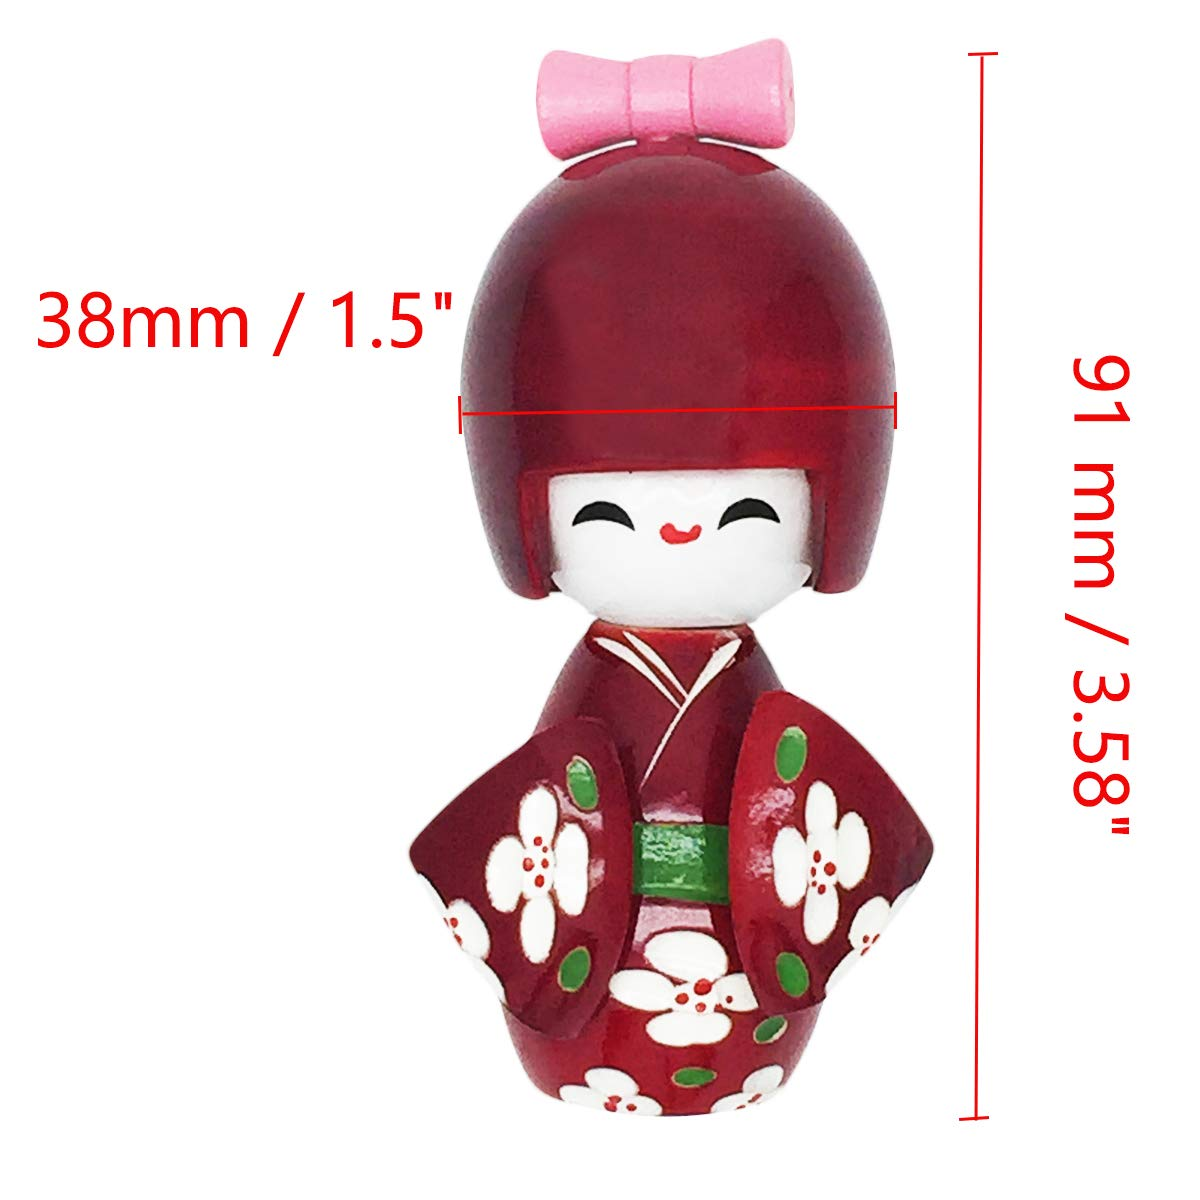 COMOK Blue Japanese Floral Kimono Sweet Smiling Girl Wooden Kokeshi Doll Toy for House /& Office Decoration Handicraft Ornaments 3.58 x 1.5 3.58 x 1.5